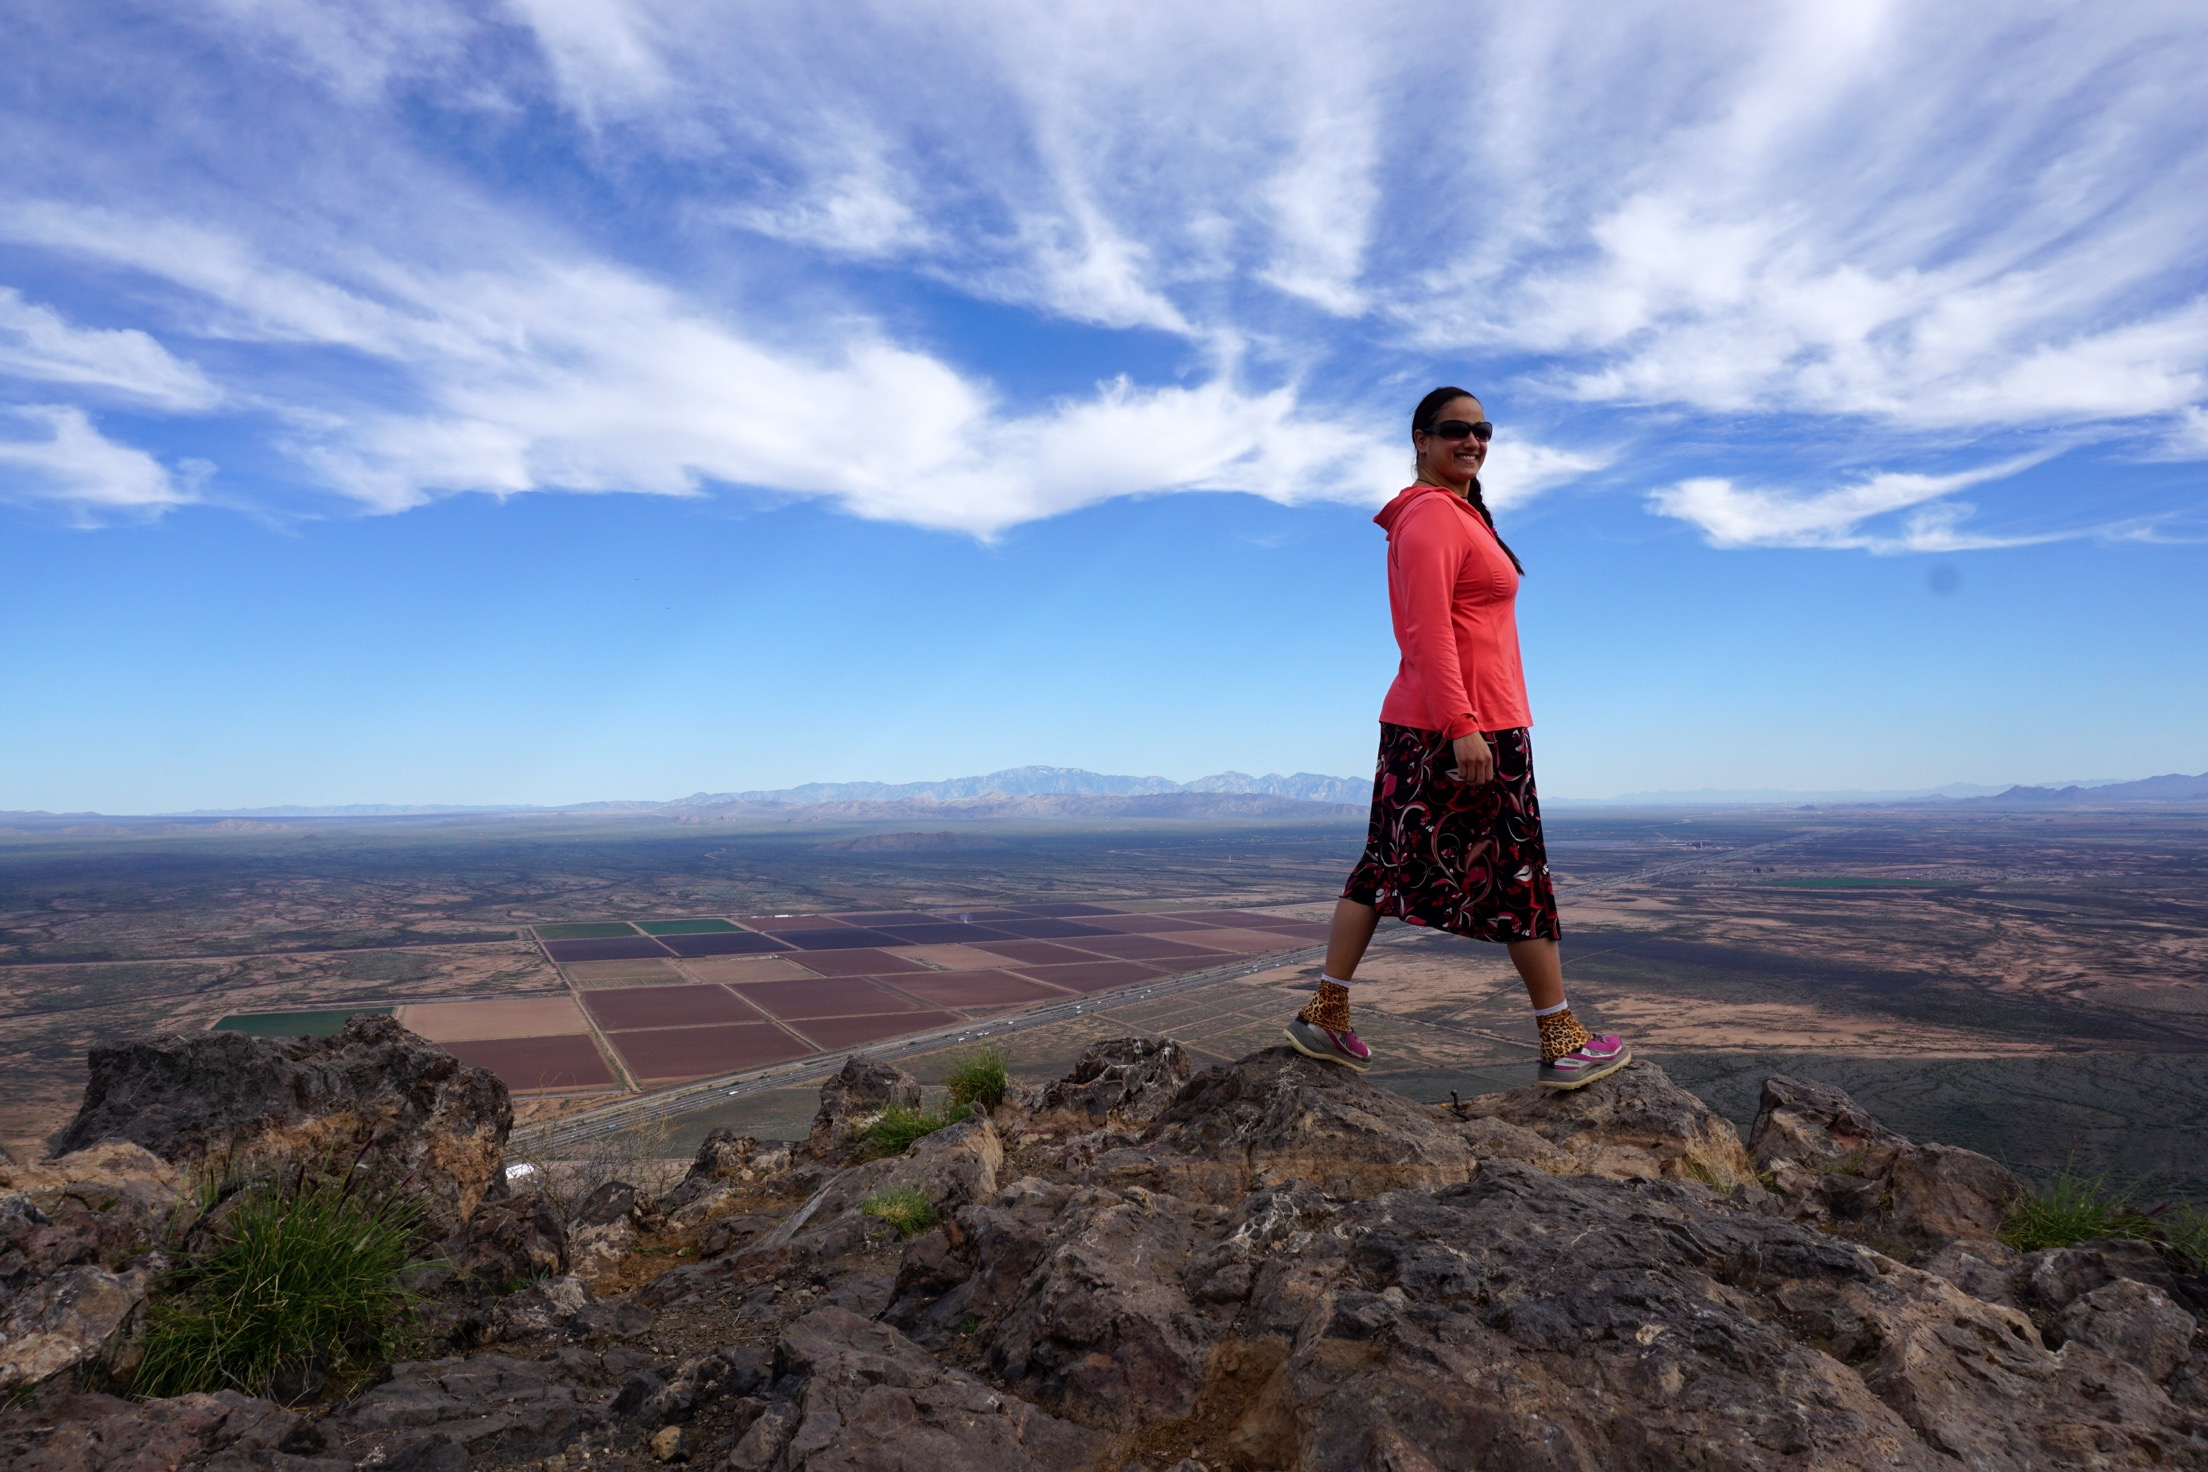 Sirena Rana Dufault stands in a pink top and floral skirt  atop Picacho Peak